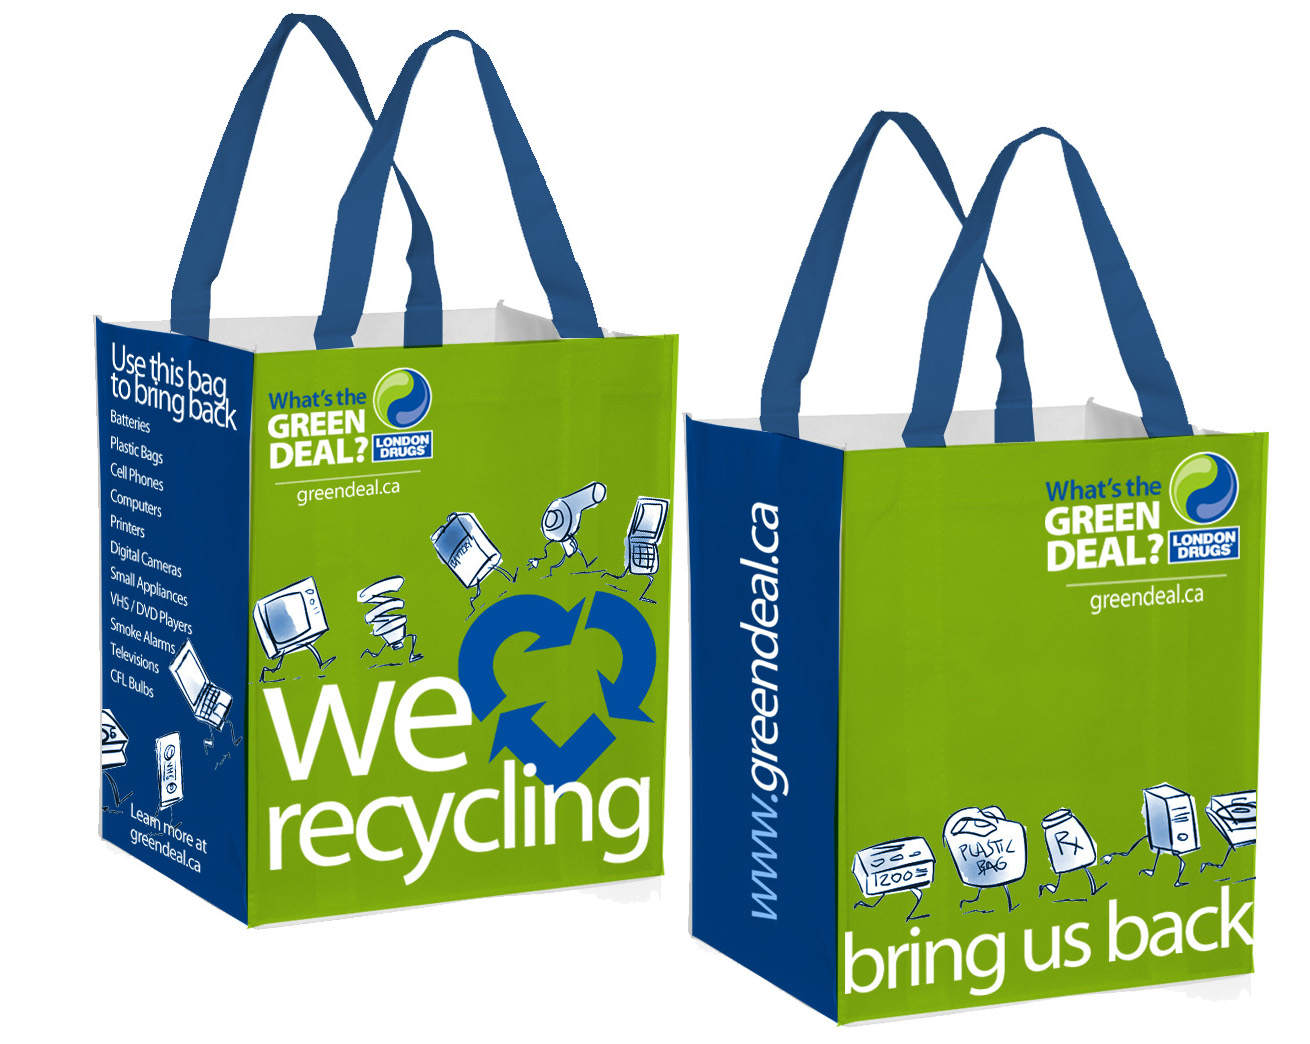 London S Recycling Bags